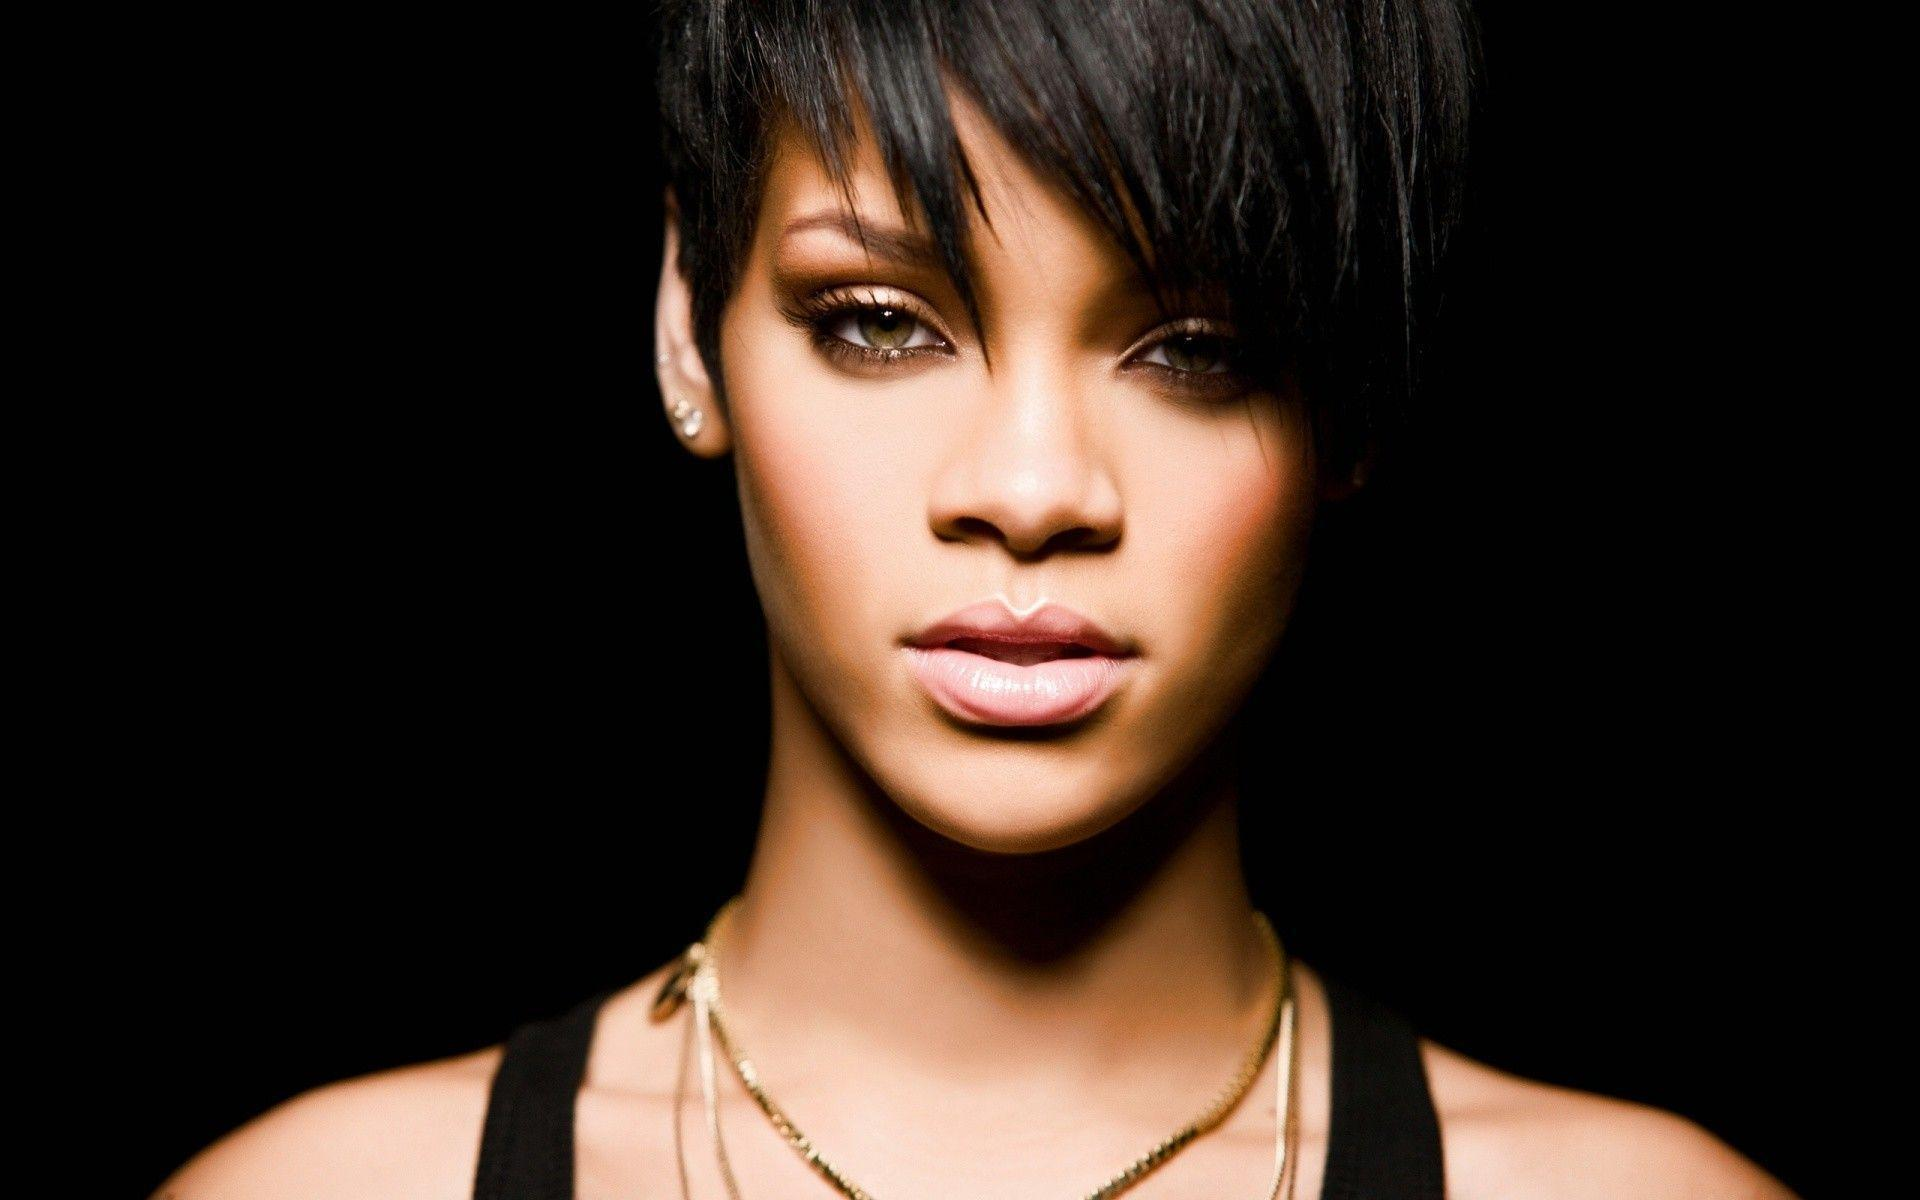 rihanna wallpaper hq wallpaper - photo #26